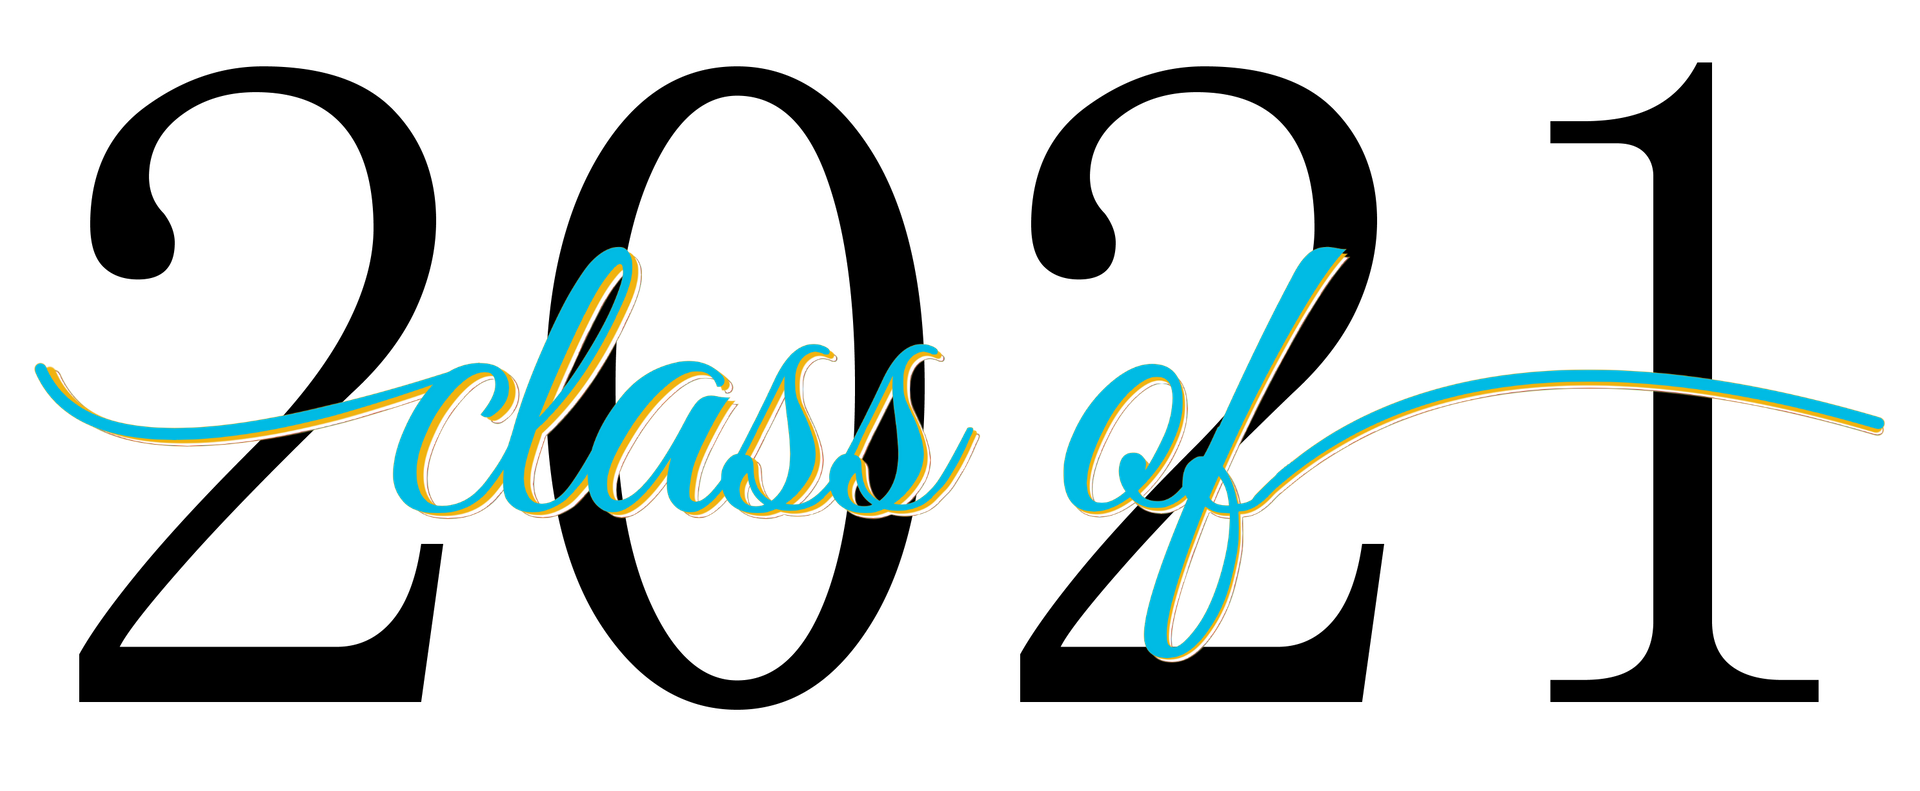 Class of 2021 imagefile